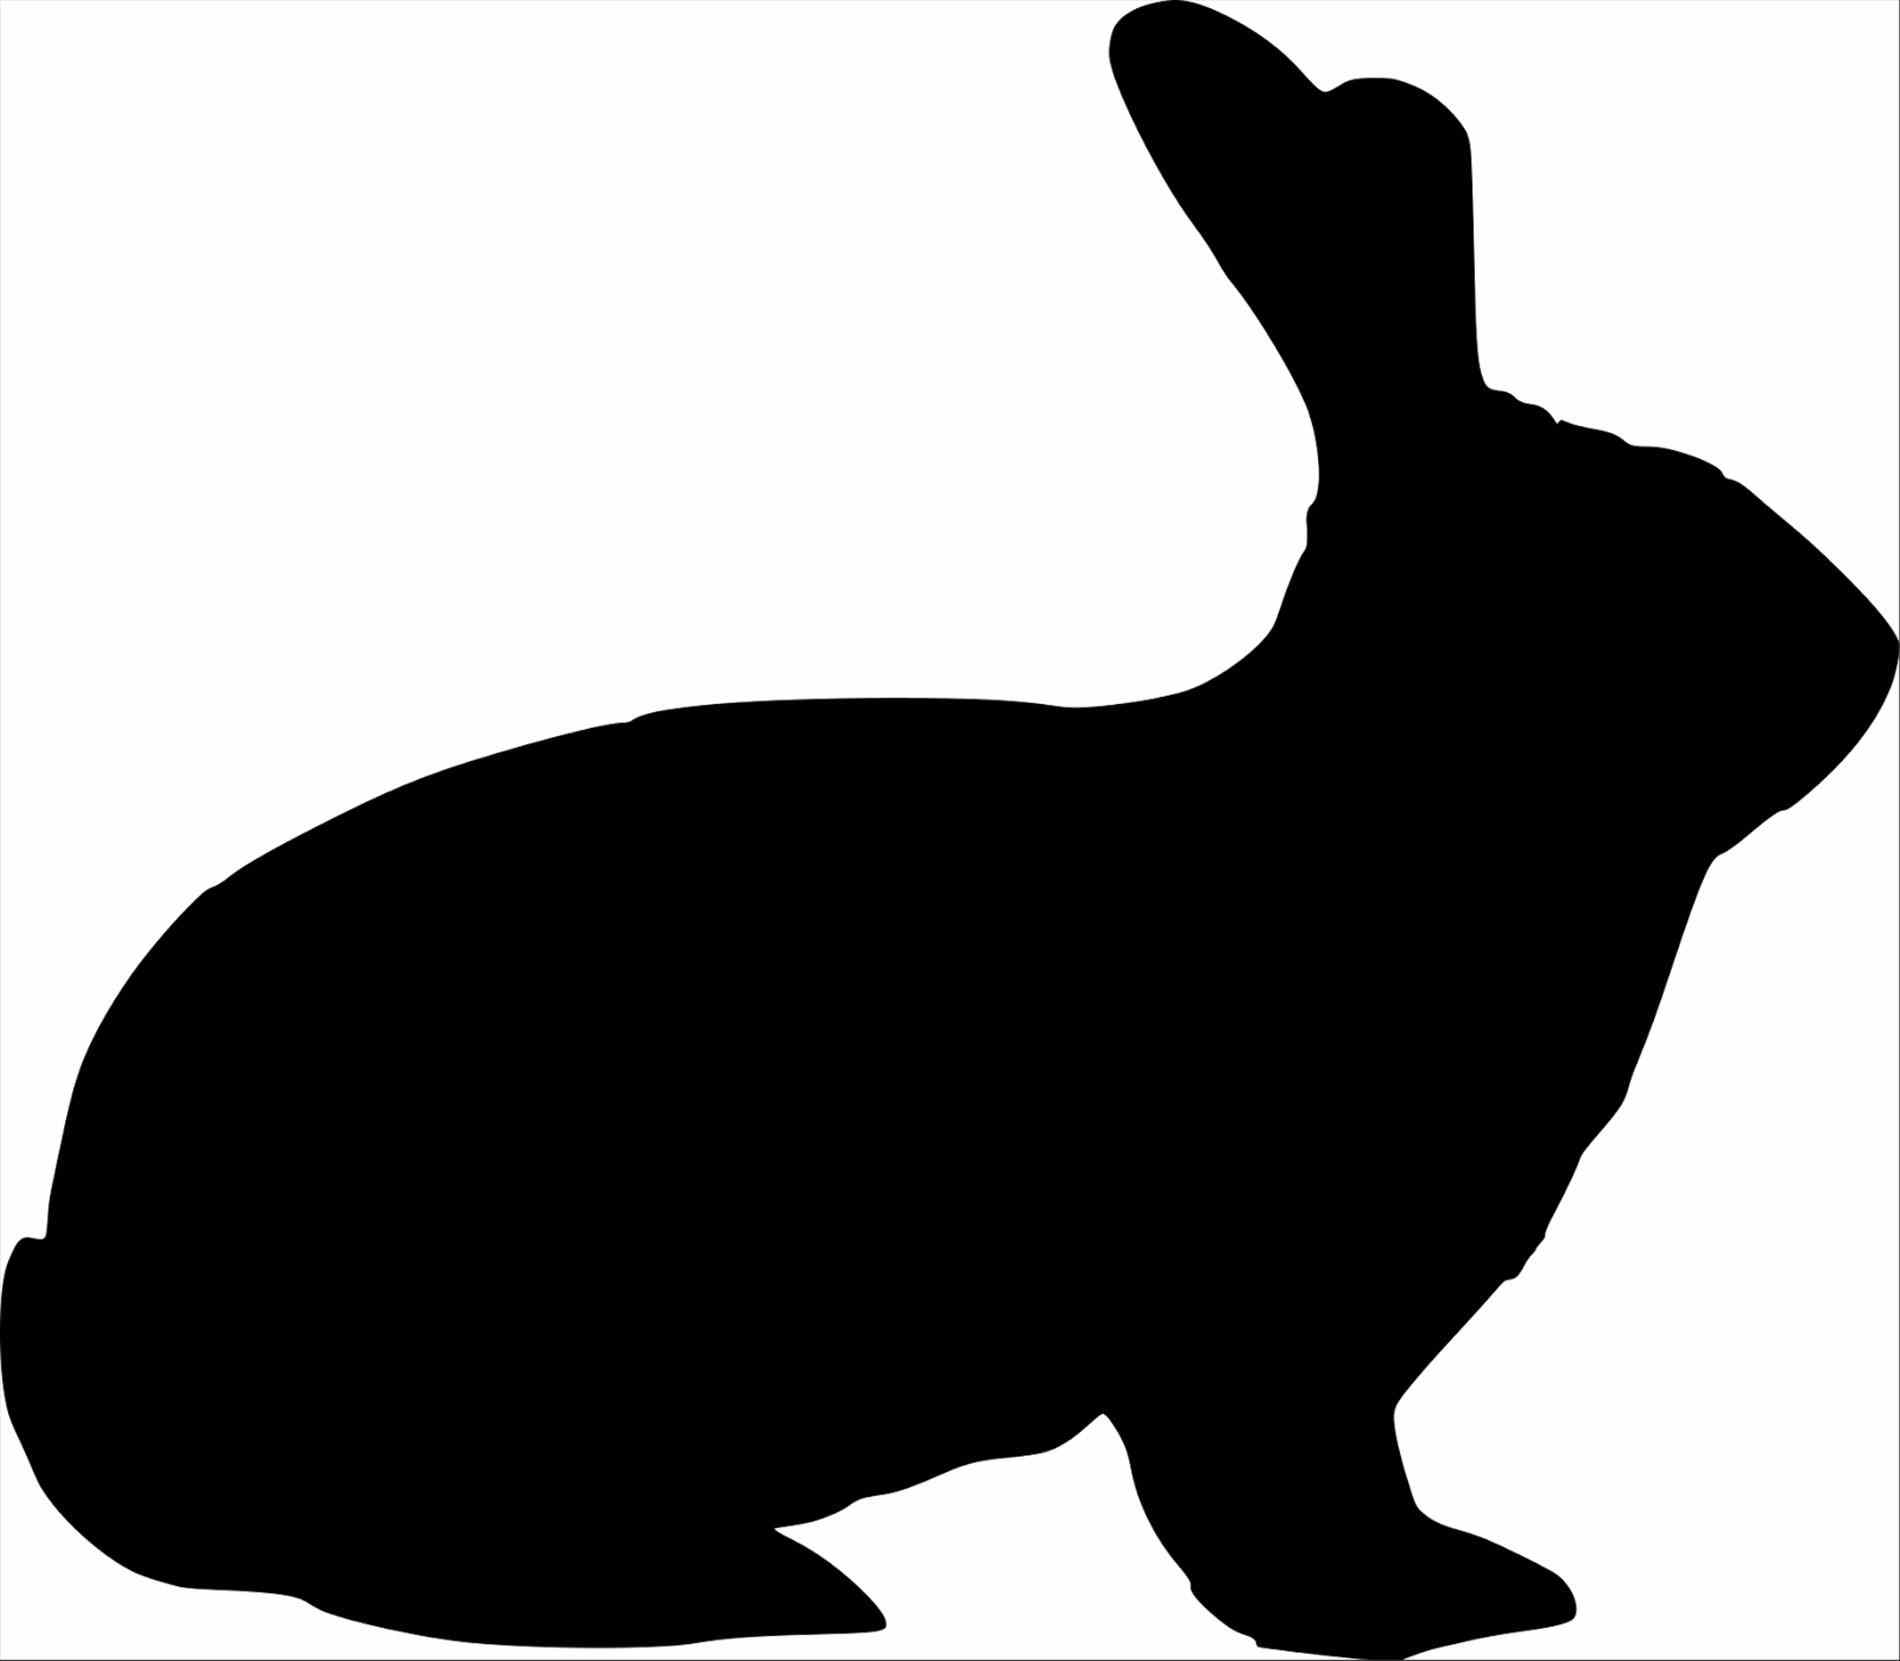 1900x1661 Pencil Easter Bunny Silhouette Clipart And In Color Rabbit Rabbit